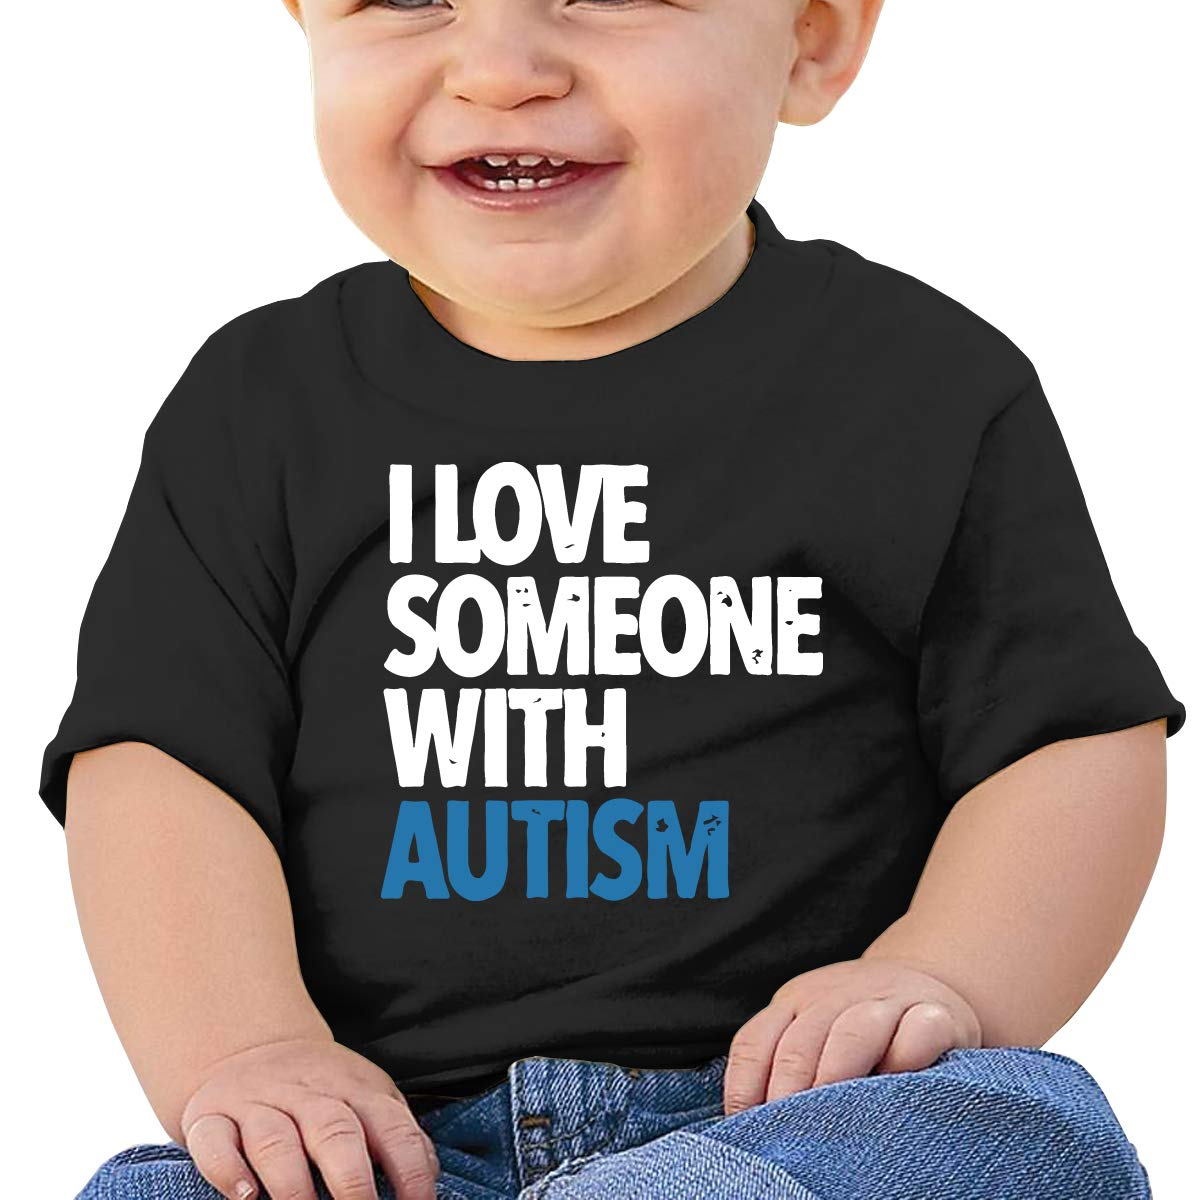 I Love Someone with Autism Newborn Baby Short Sleeve Crewneck T Shirts 6-18 Month Tops